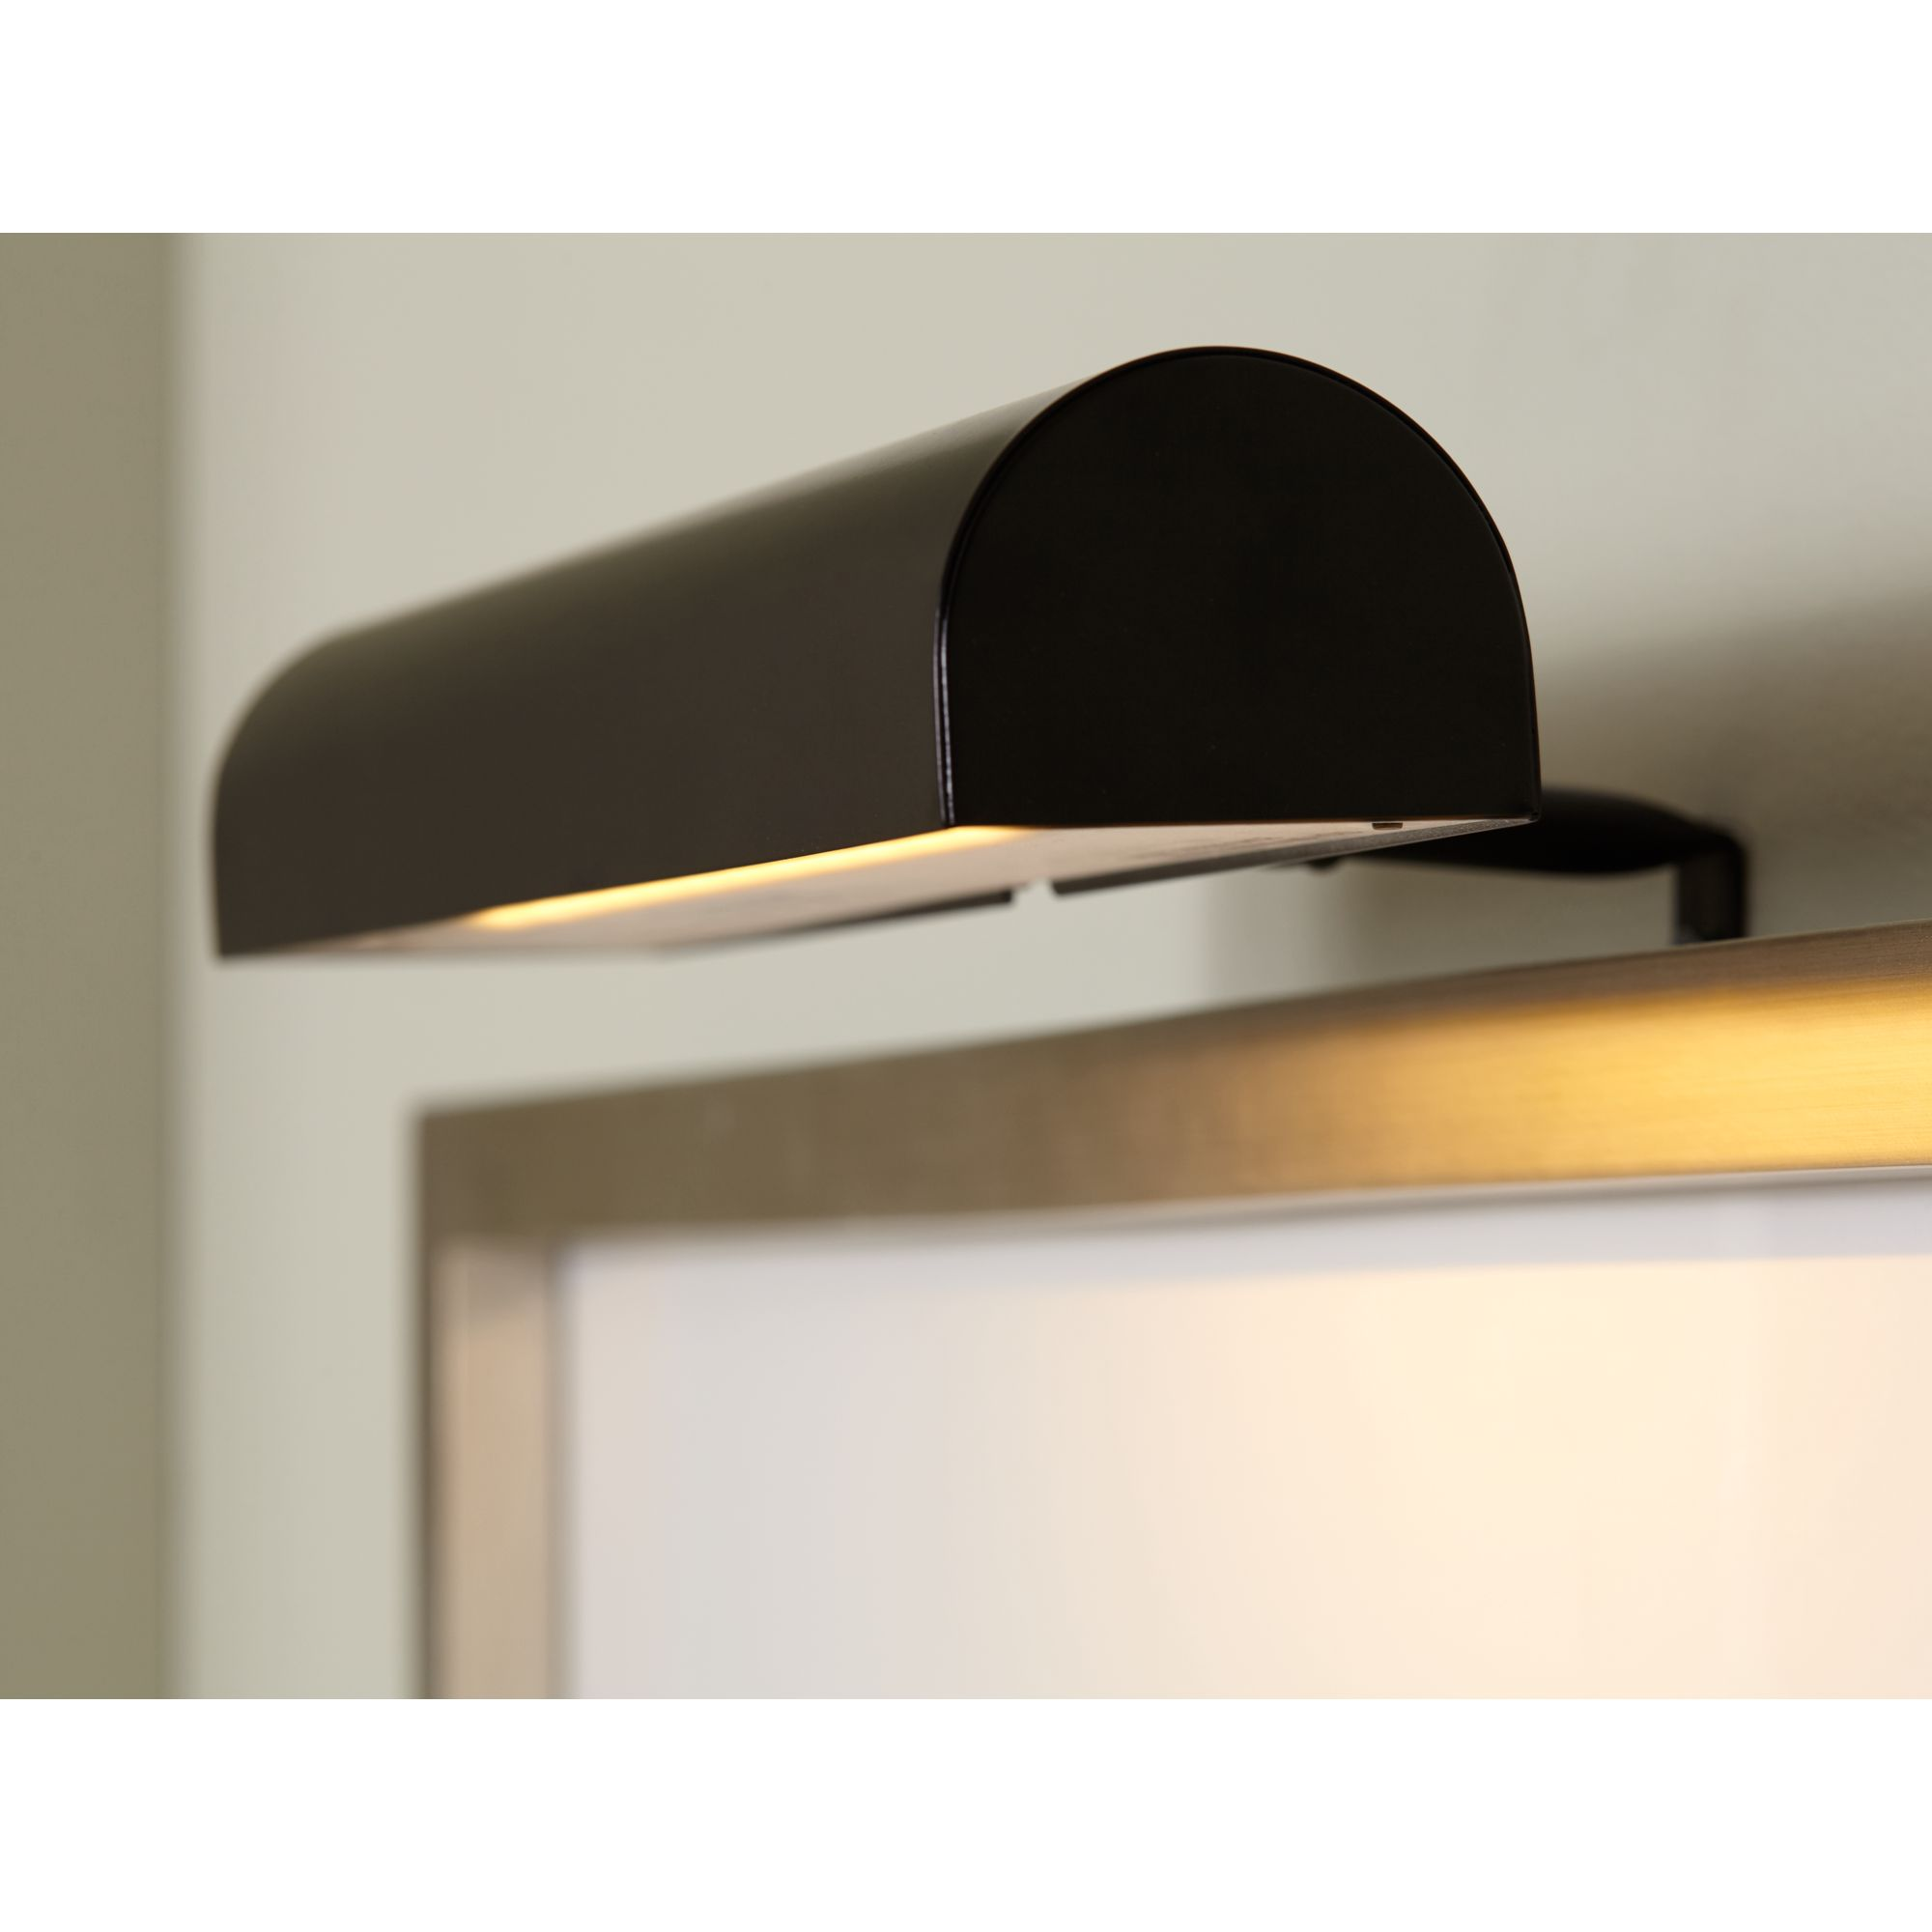 "Concept Lighting Concept 11 1 2"" Wide Black Cordless-Remote Led Picture Light by Concept Lighting"